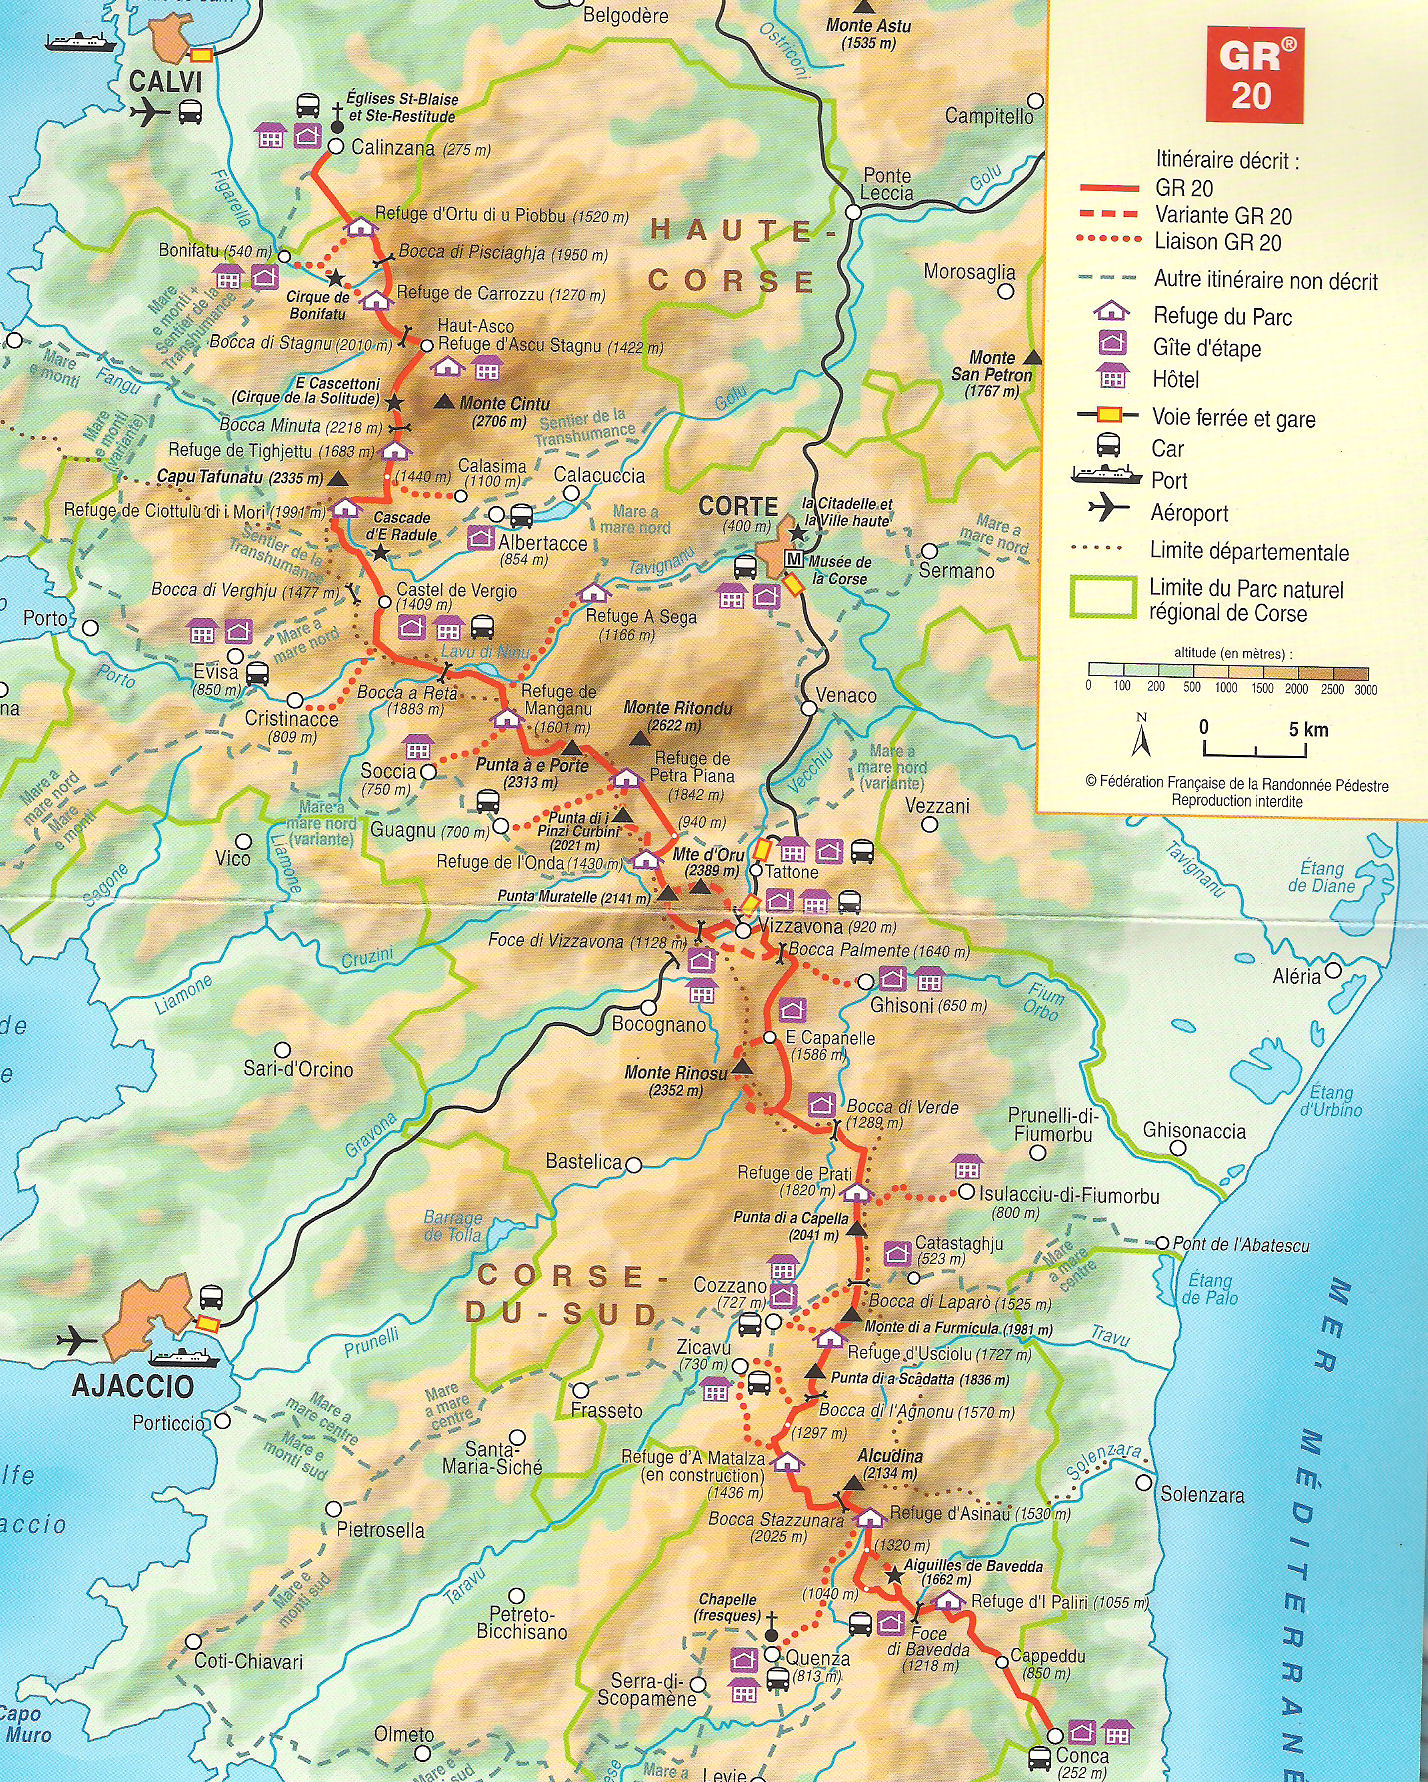 Corsica 2016 GR20 from South to North standard guided version